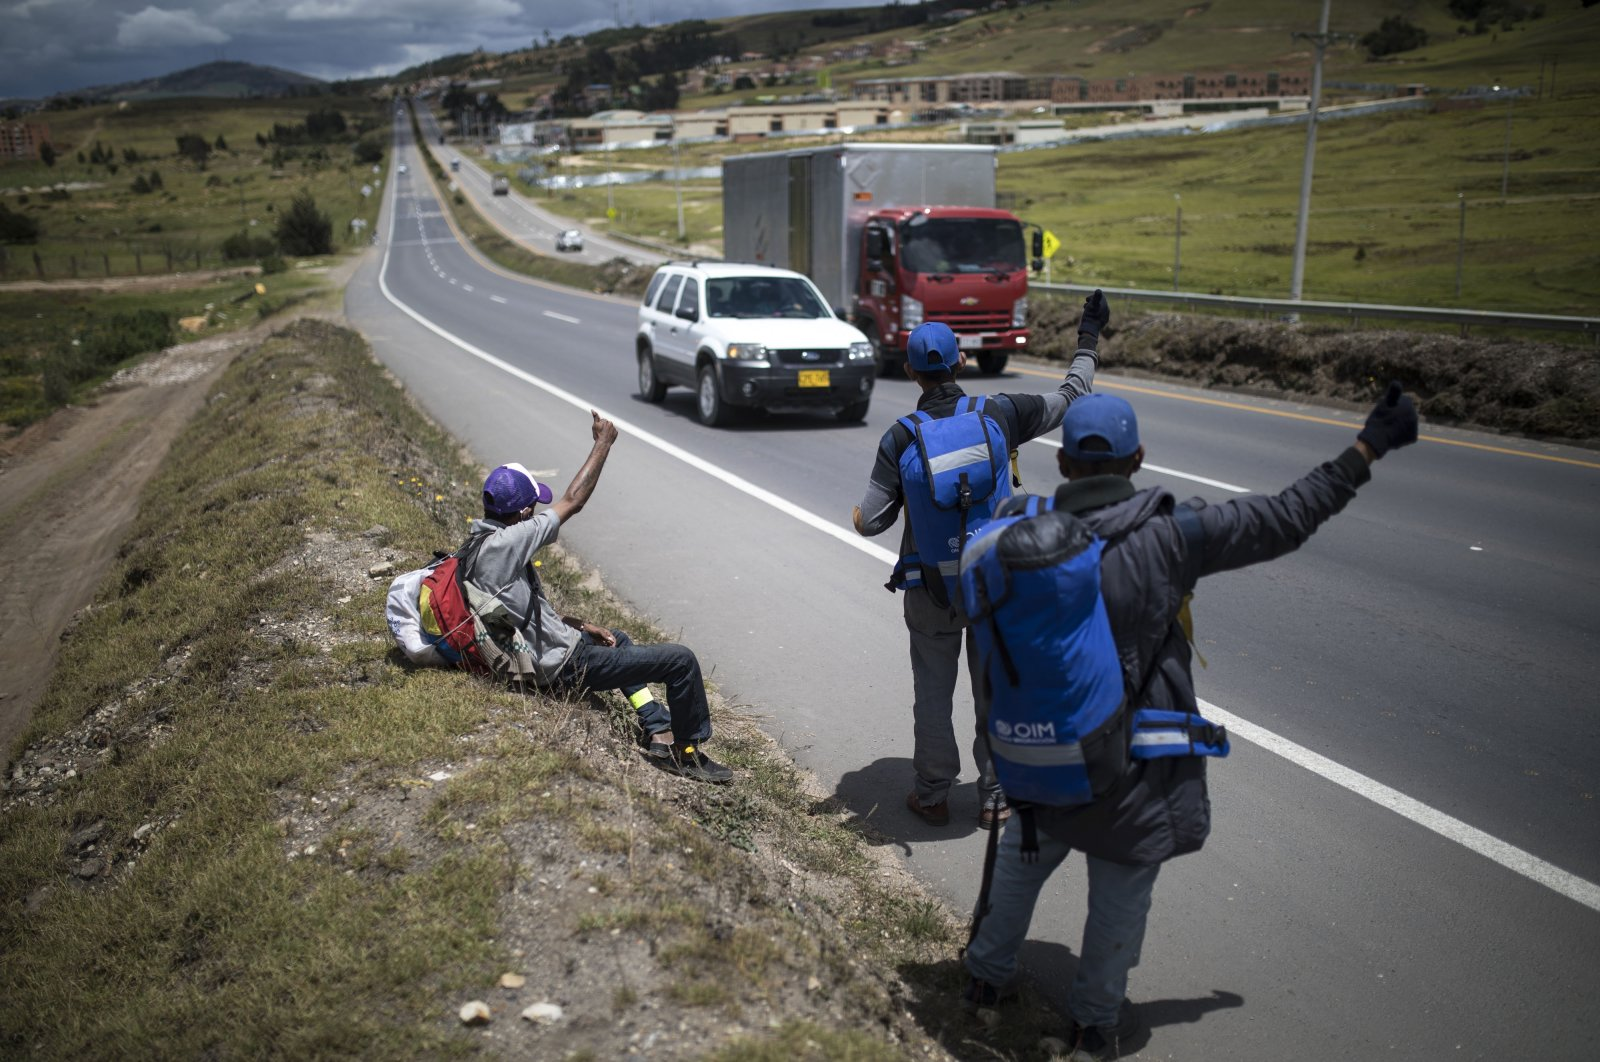 Venezuelan migrants hitchhike toward the capital, in Tunja, Colombia, Oct. 6, 2020. (AP Photo)